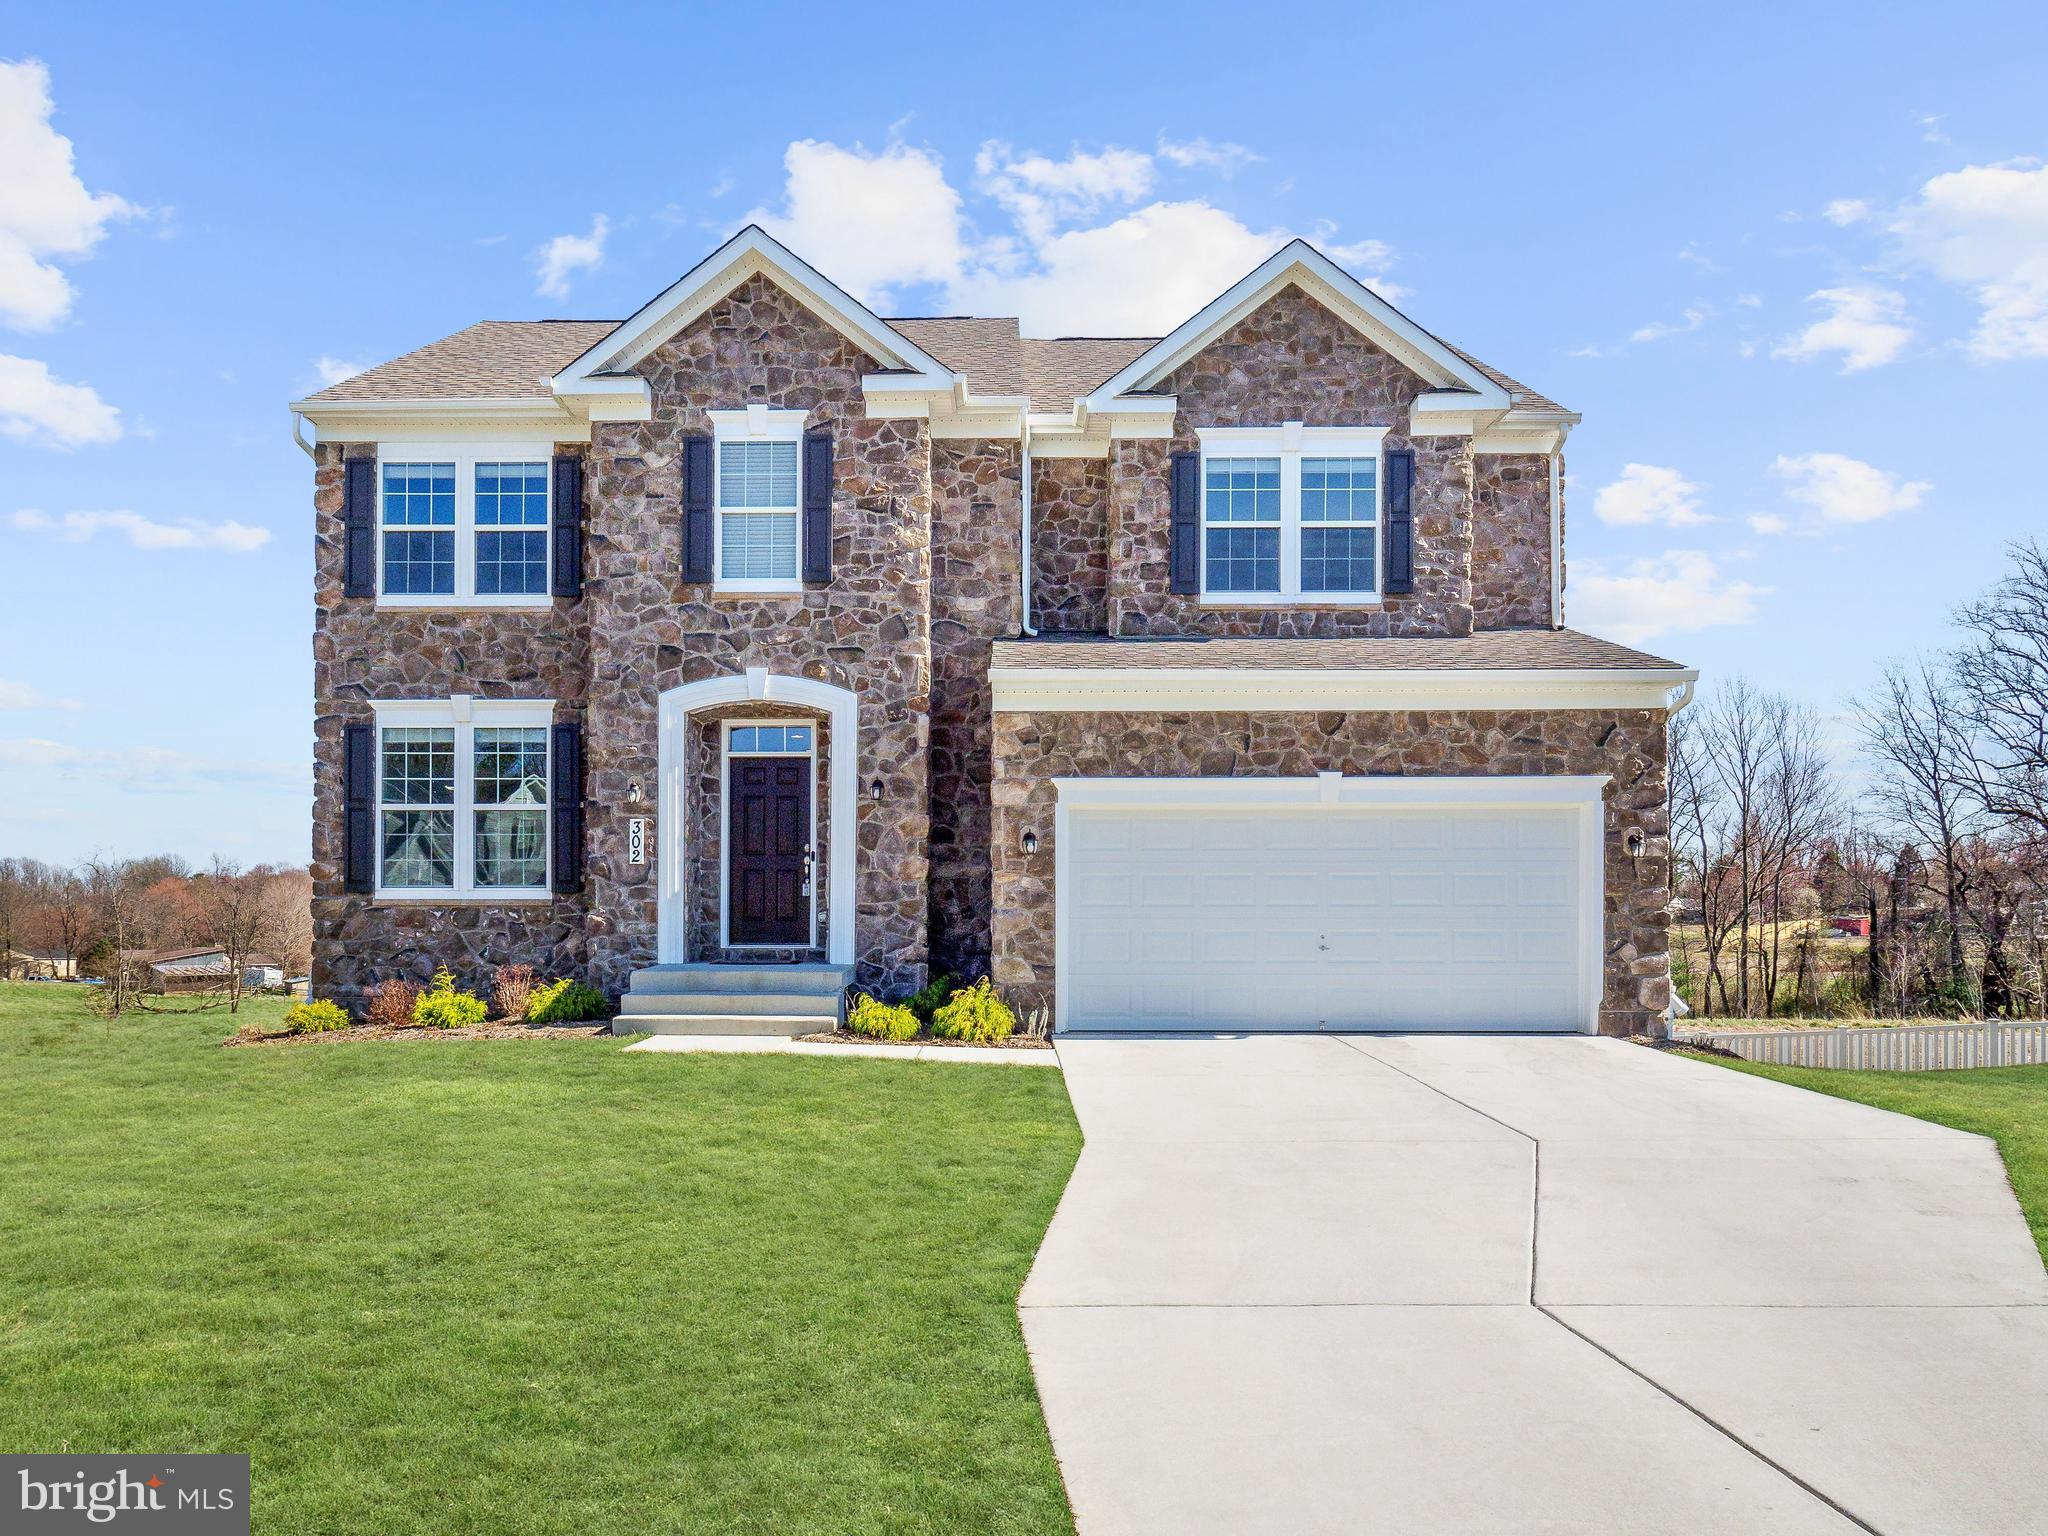 302 CLOVERLY FOREST DRIVE, SILVER SPRING, MD 20905